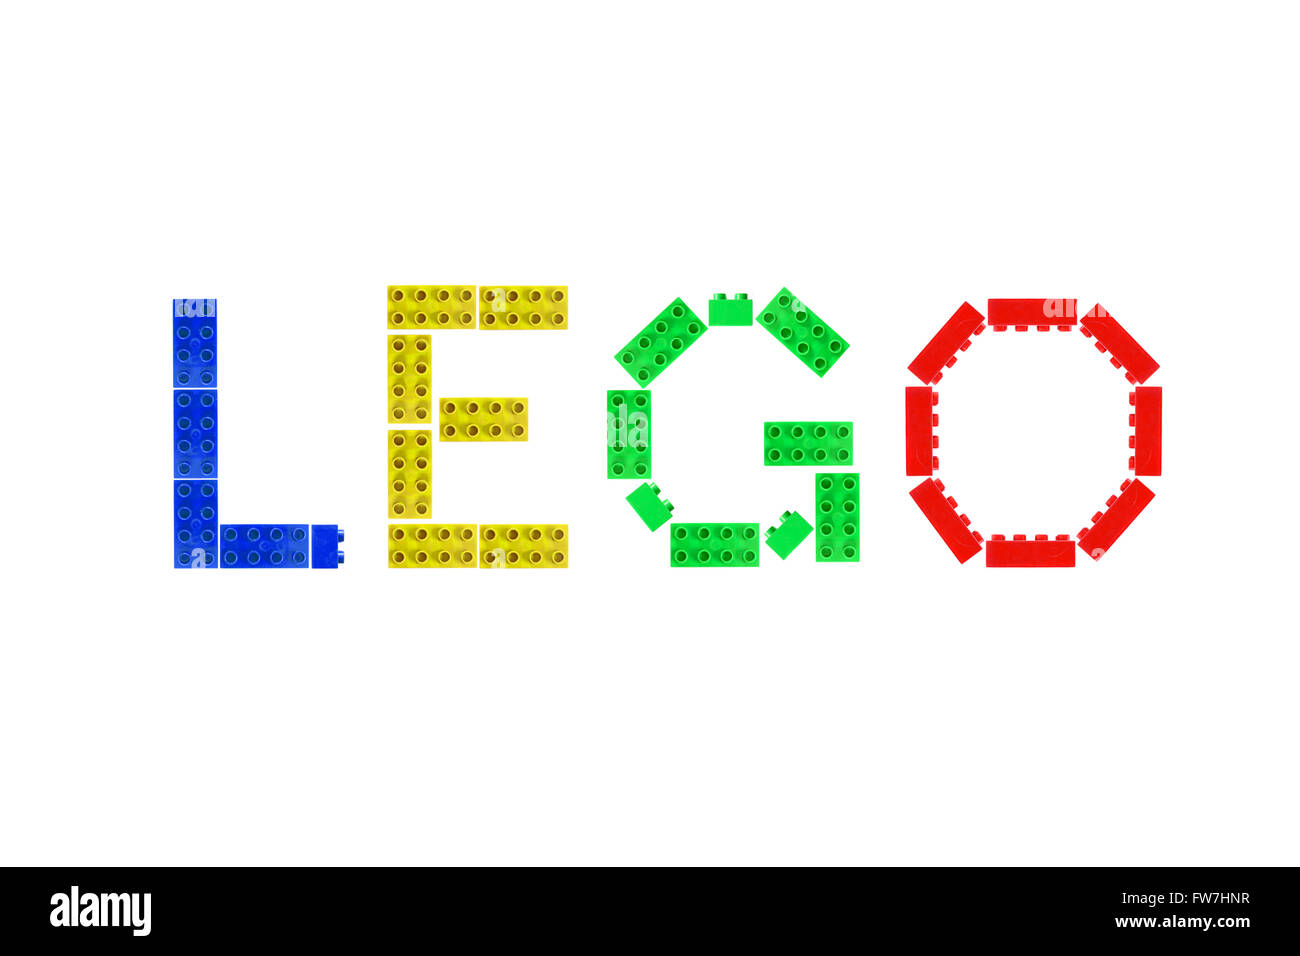 Lego Words Stock Photos & Lego Words Stock Images - Alamy